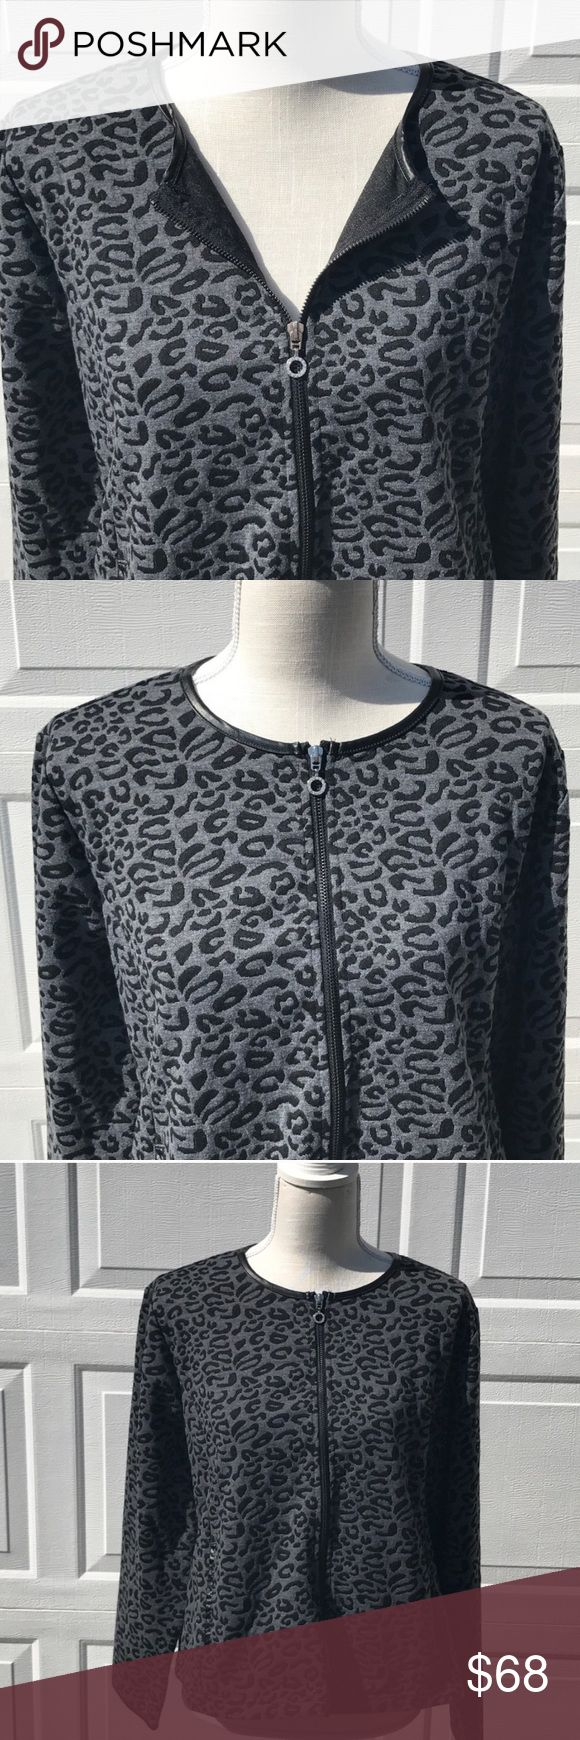 Cathy Daniels C.D. Petite animal print jacket PXL Cathy Daniels C.D. Petite animal print jacket PXL  Item: Cathy Daniels C.D. Petite animal print jacket PXL Color: black and white  Style: animal print leather collar zip up light weight jacket  Size: Petite XL Excellent used condition!    **Please see all photos. Feel free to ask any questions before purchase** Cathy Daniels Sweaters Cardigans